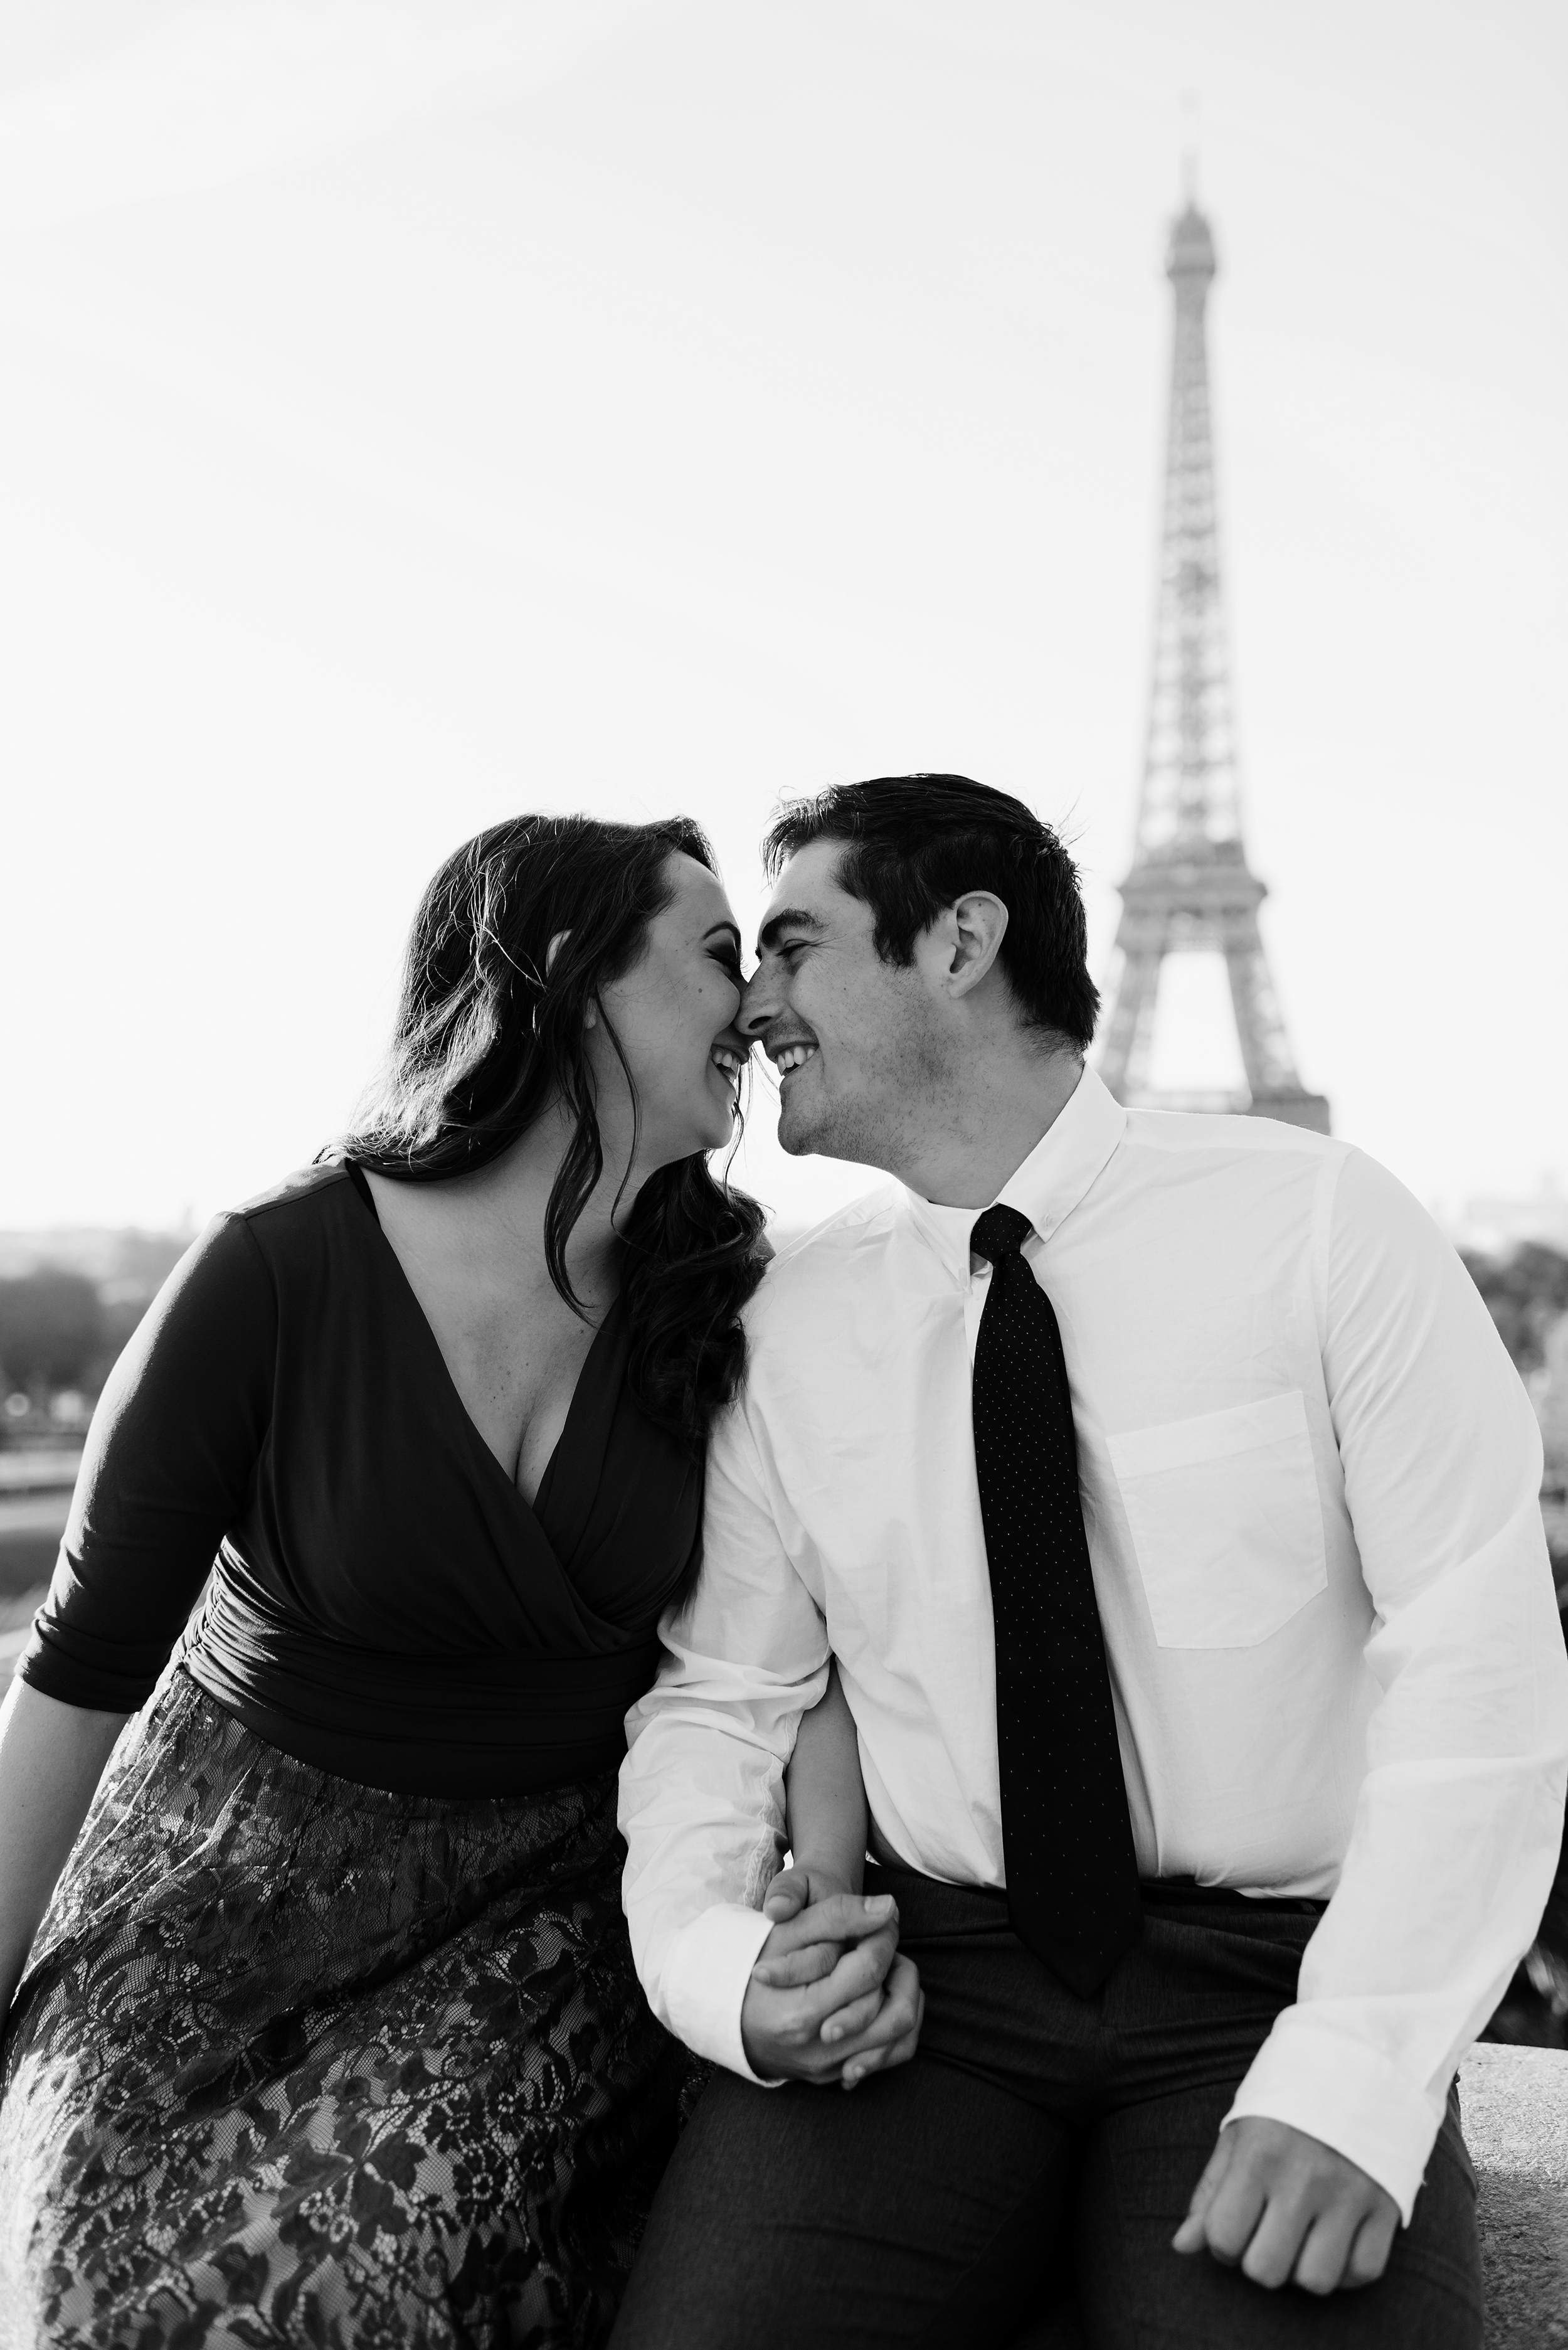 Couple-photoshoot-Anniversary-Paris-Eiffel-Tower-Trocadero034.jpg